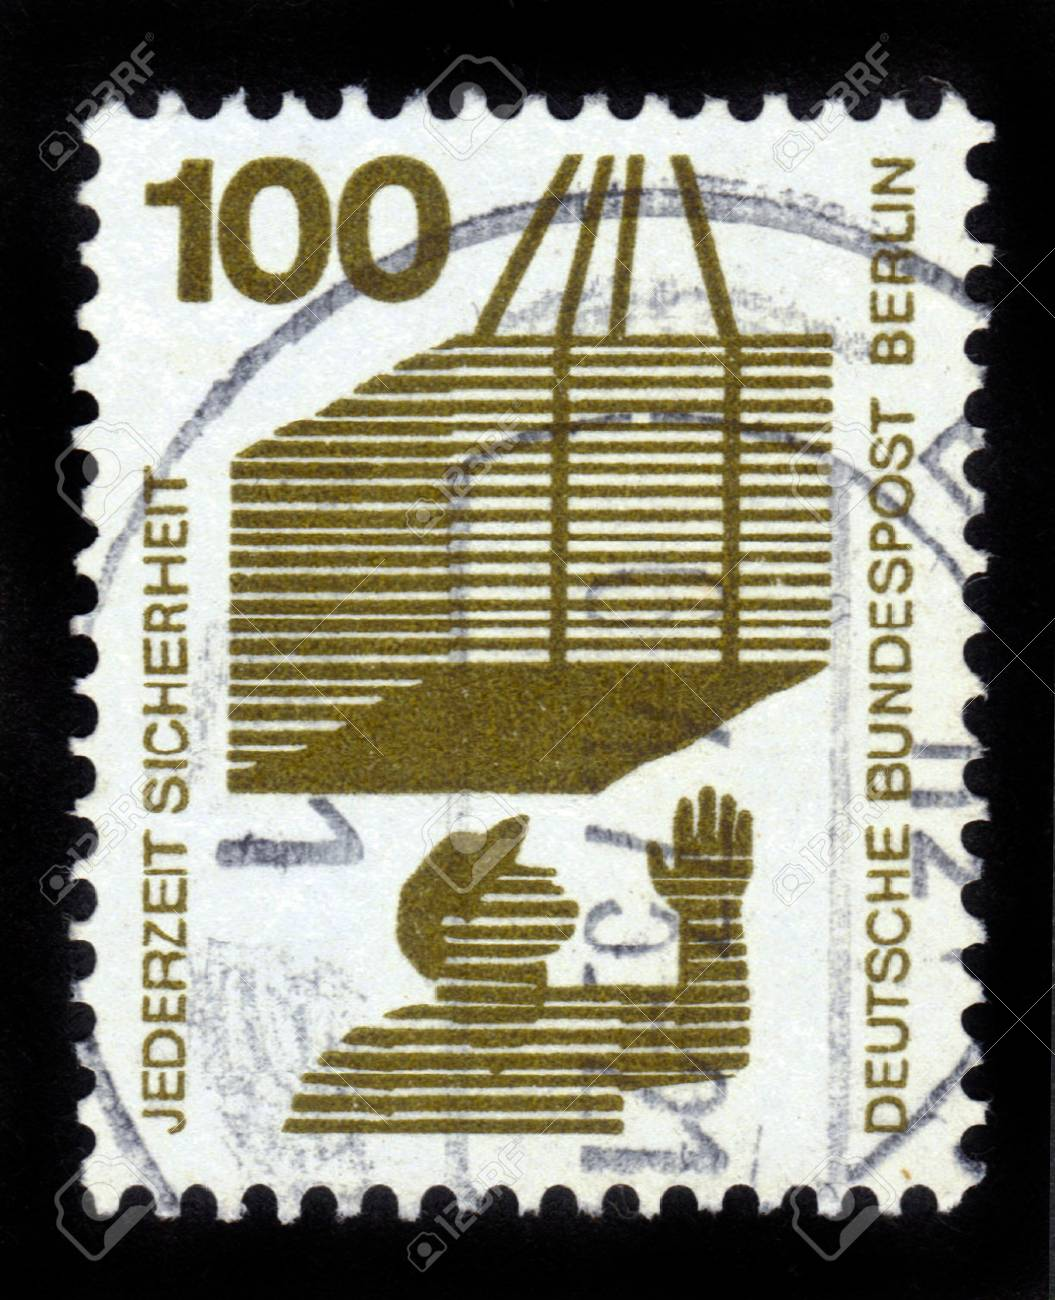 GERMANY - CIRCA 1973  a stamp printed in the Germany shows Hoisted Cargo, Accident Prevention, circa 1973 Stock Photo - 14720173